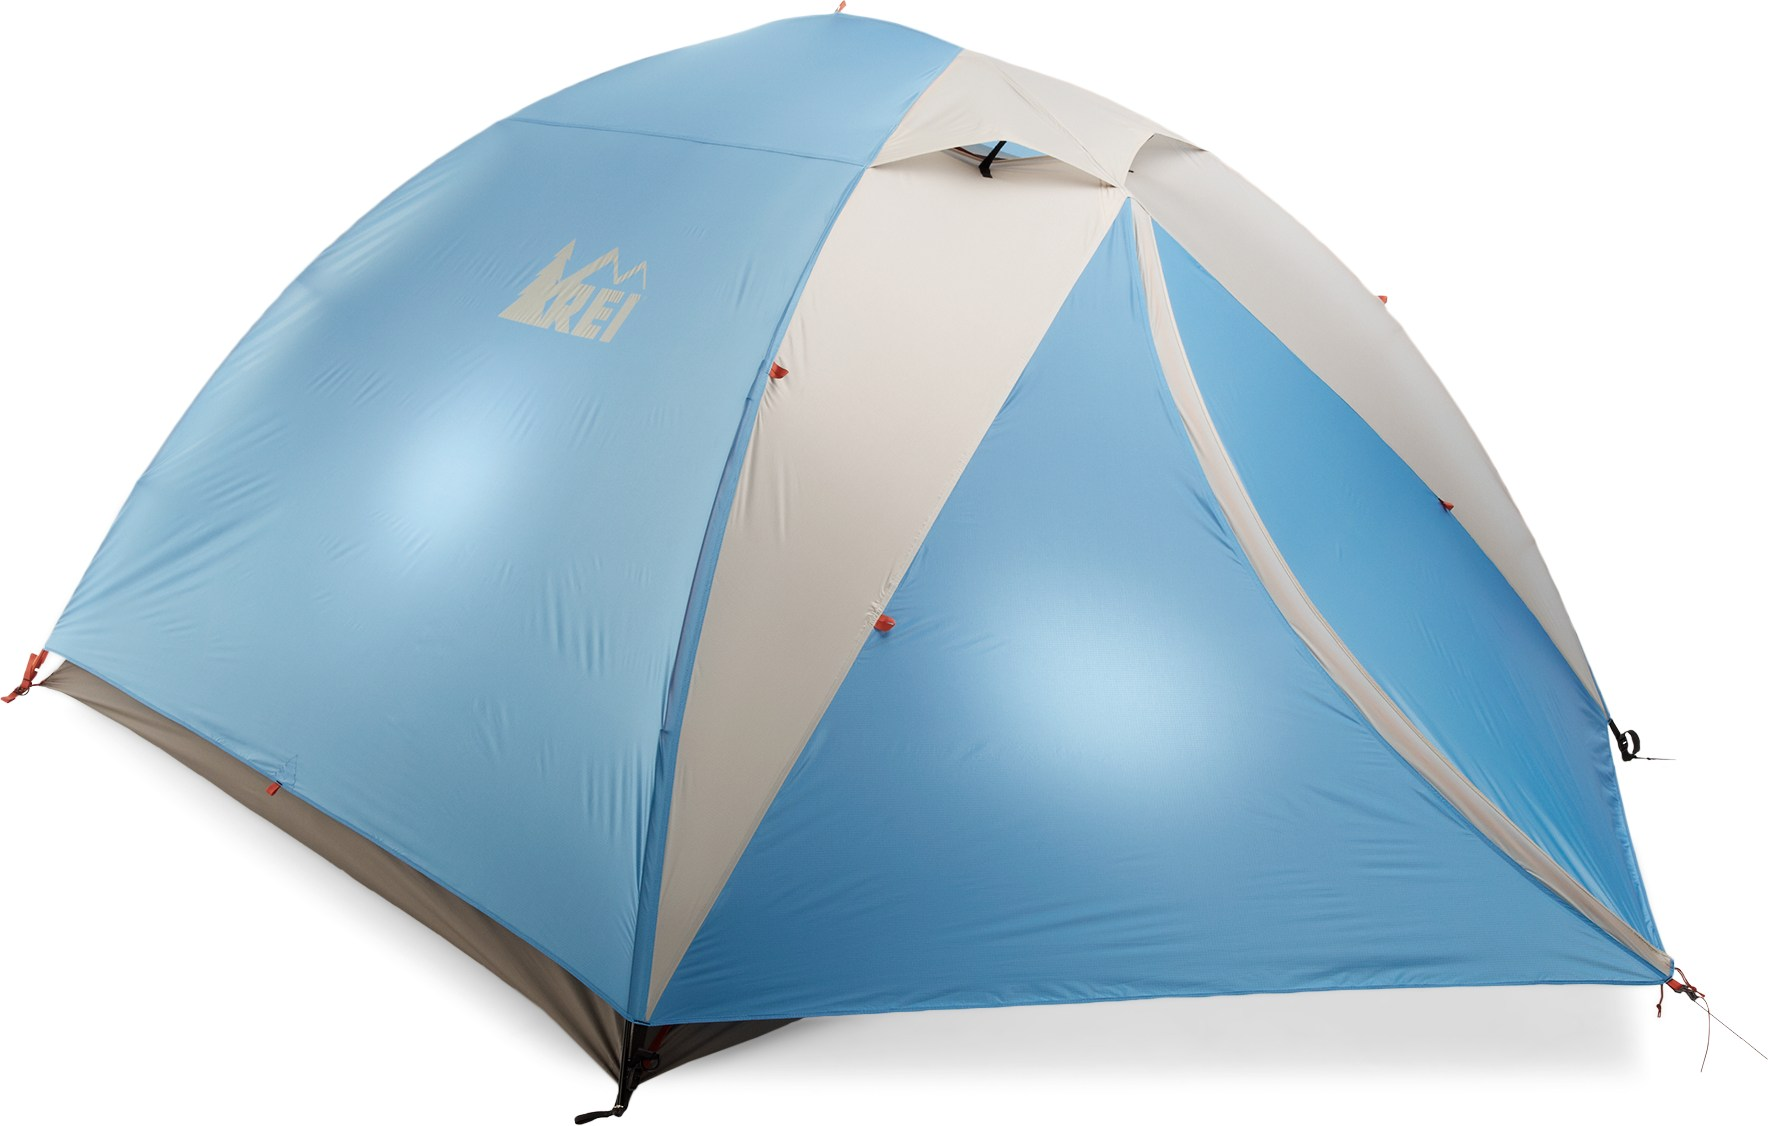 sc 1 st  Glacier National Park Travel Guide : rei dome tent - memphite.com